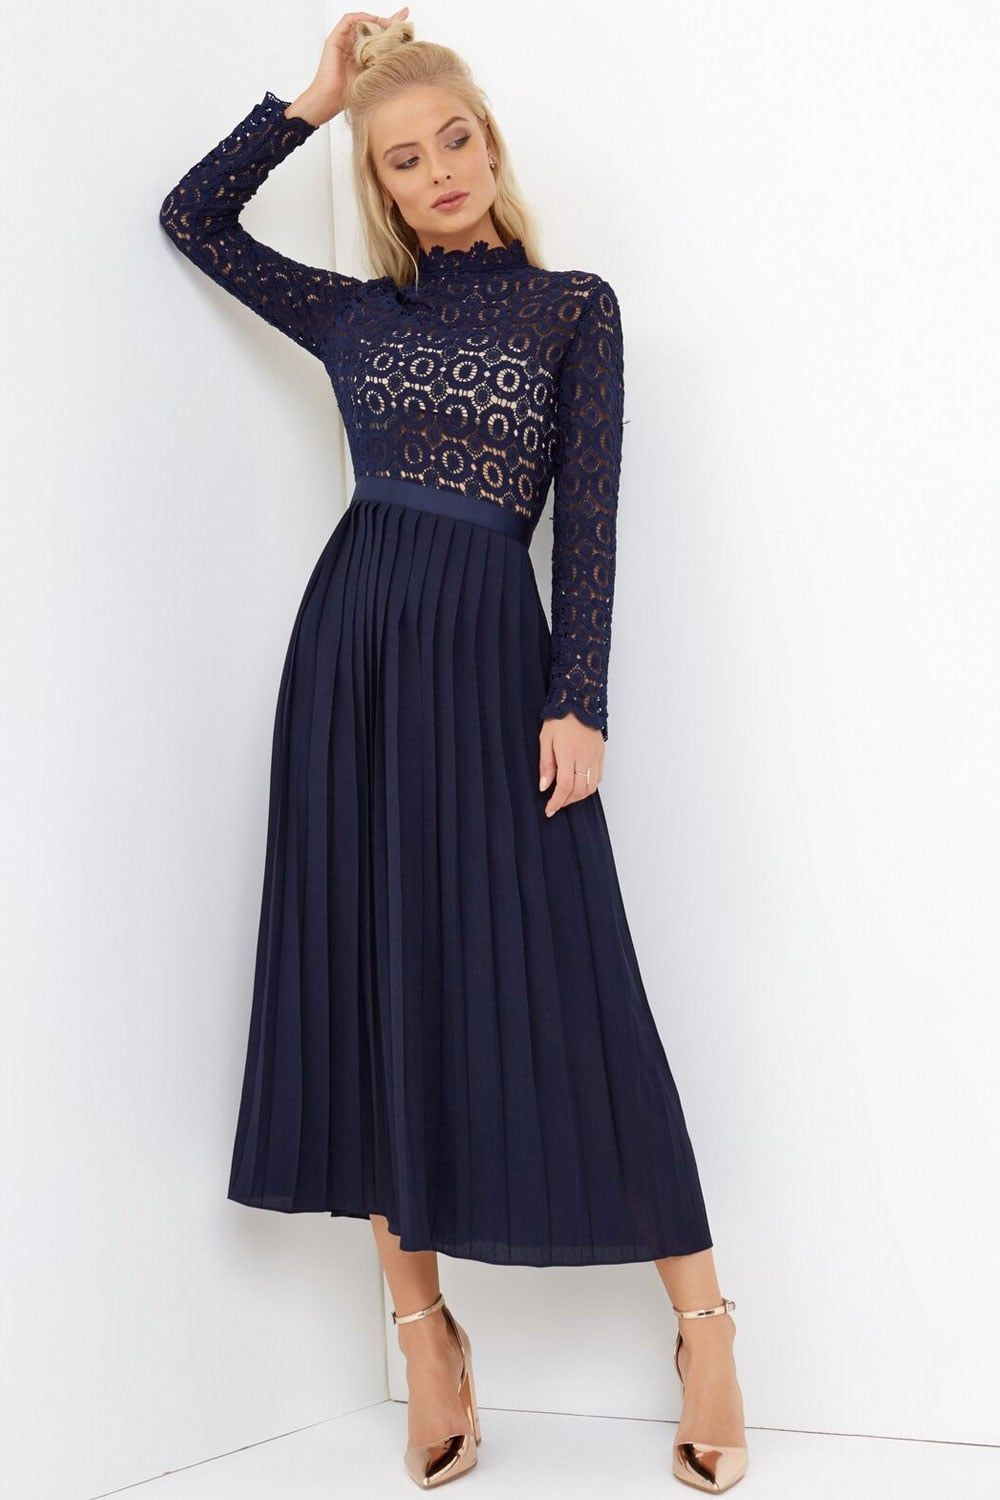 67f99ce42e99 Little Mistress Navy Crochet Lace Midi Dress With Pleats